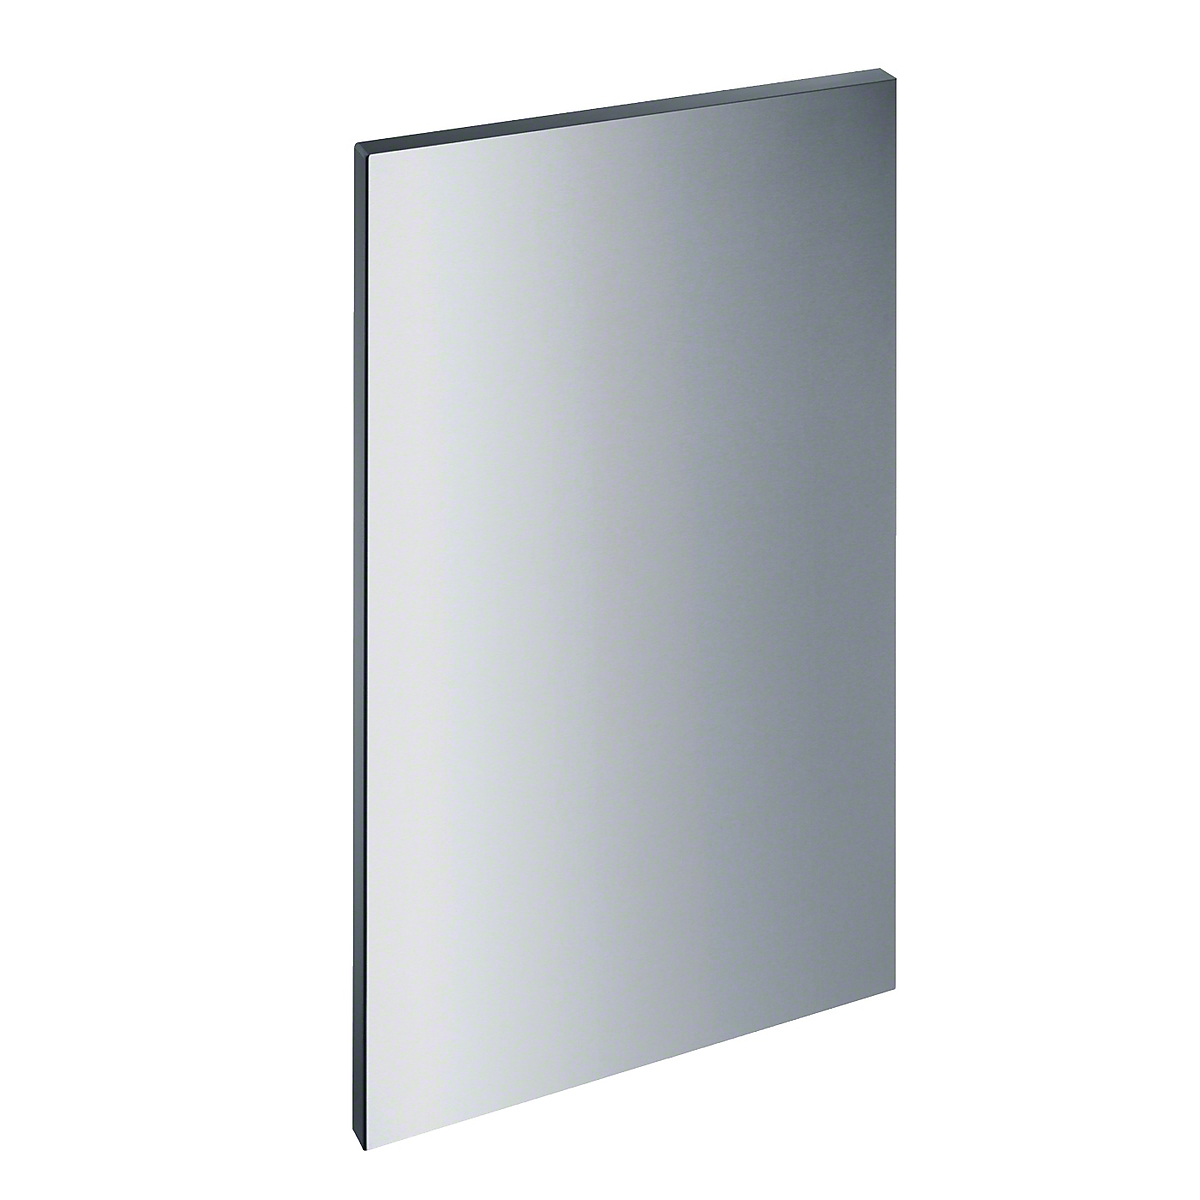 Int. front panel: W x H, 18 x 28 inClean Touch Steel™